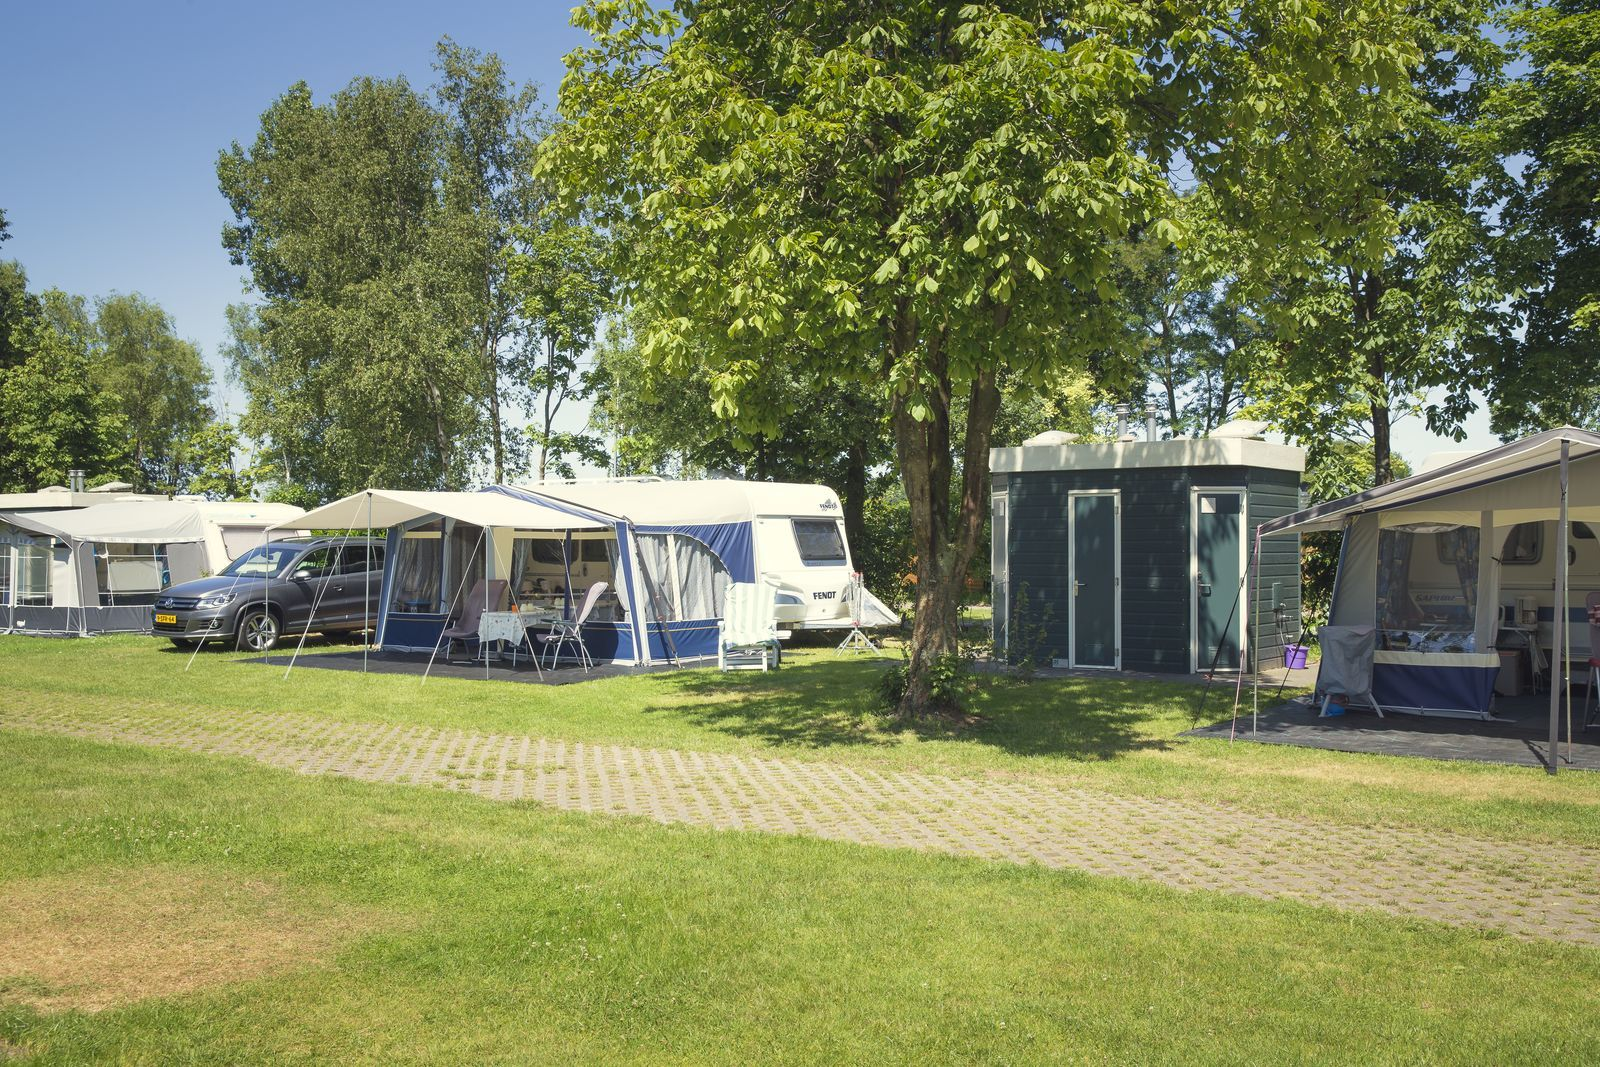 Campsite with private sanitary